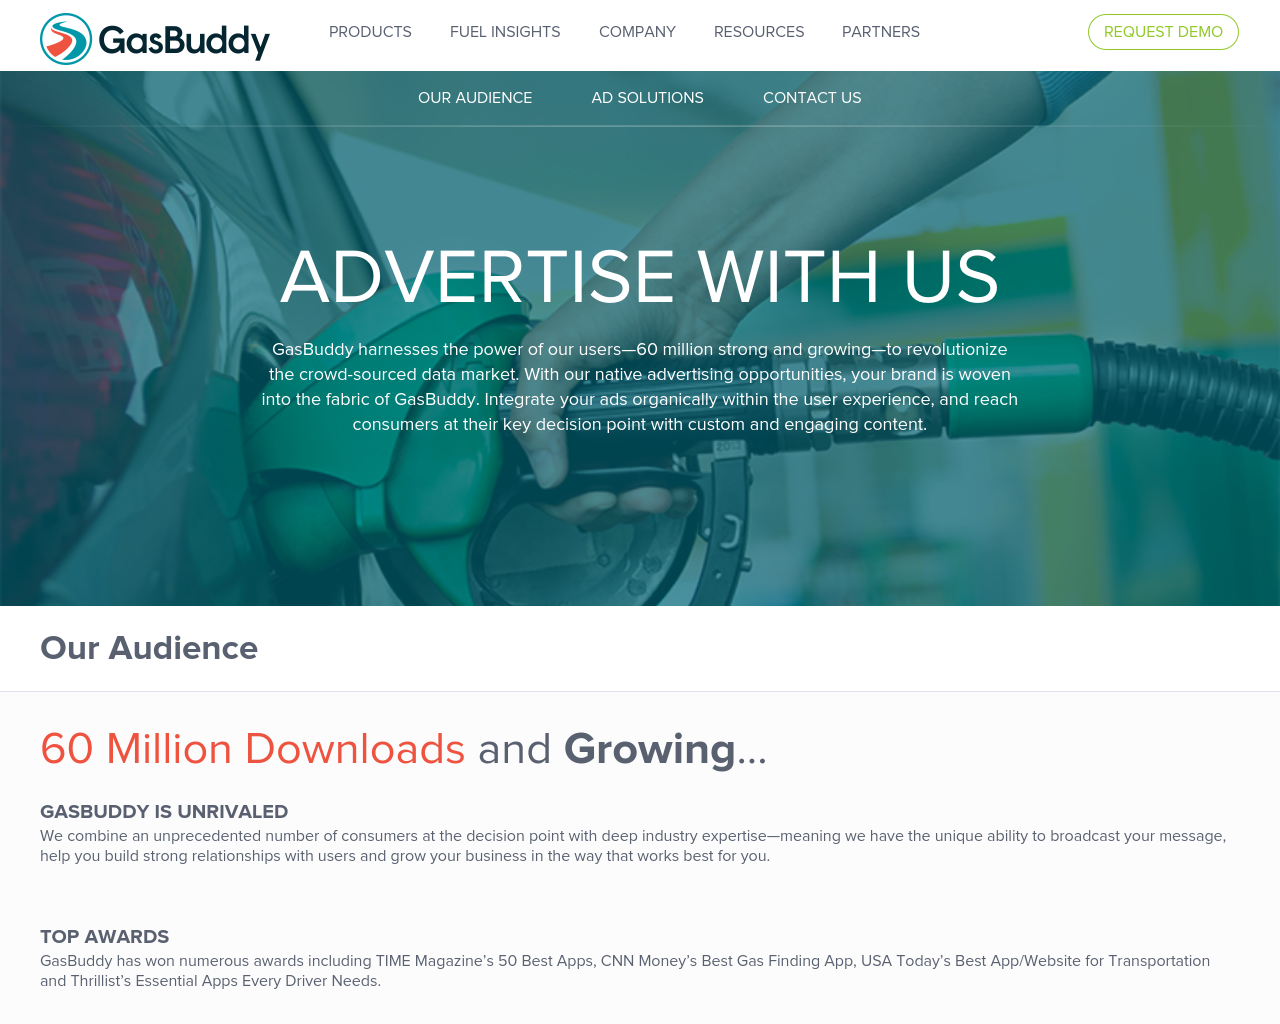 San-Diego-GasBuddy-Advertising-Reviews-Pricing